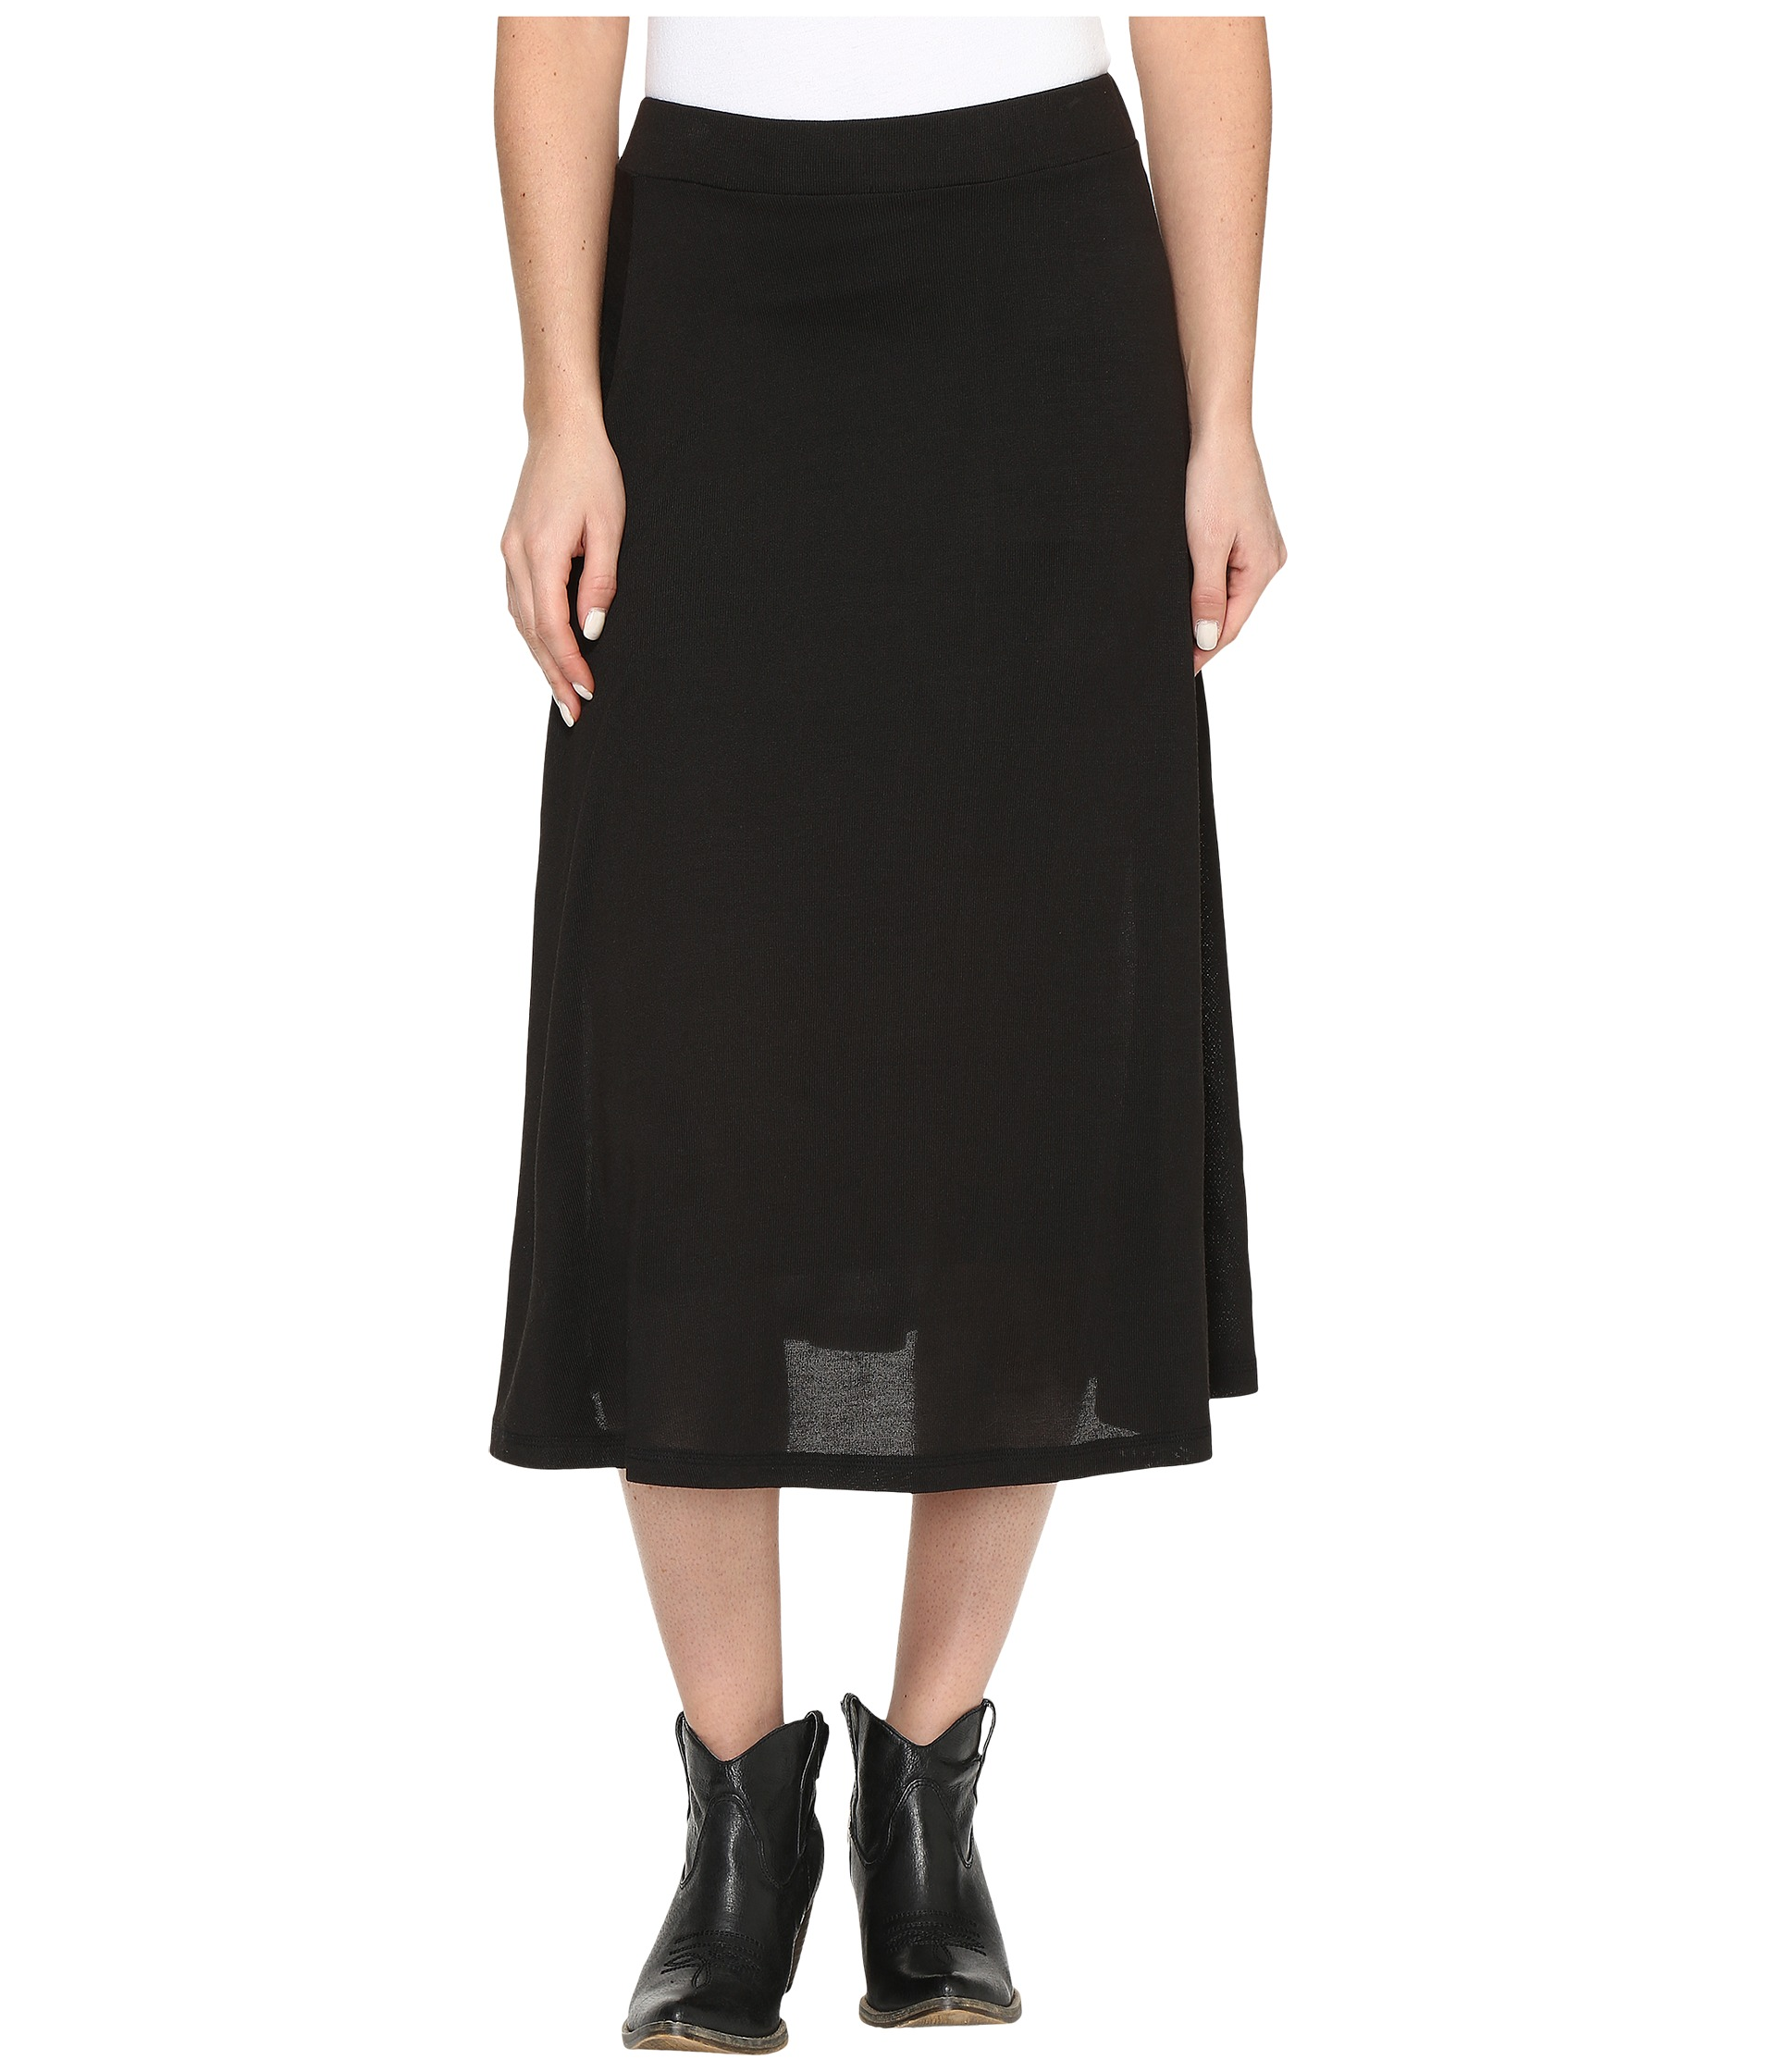 roper 0612 black sweater jersey a line skirt black